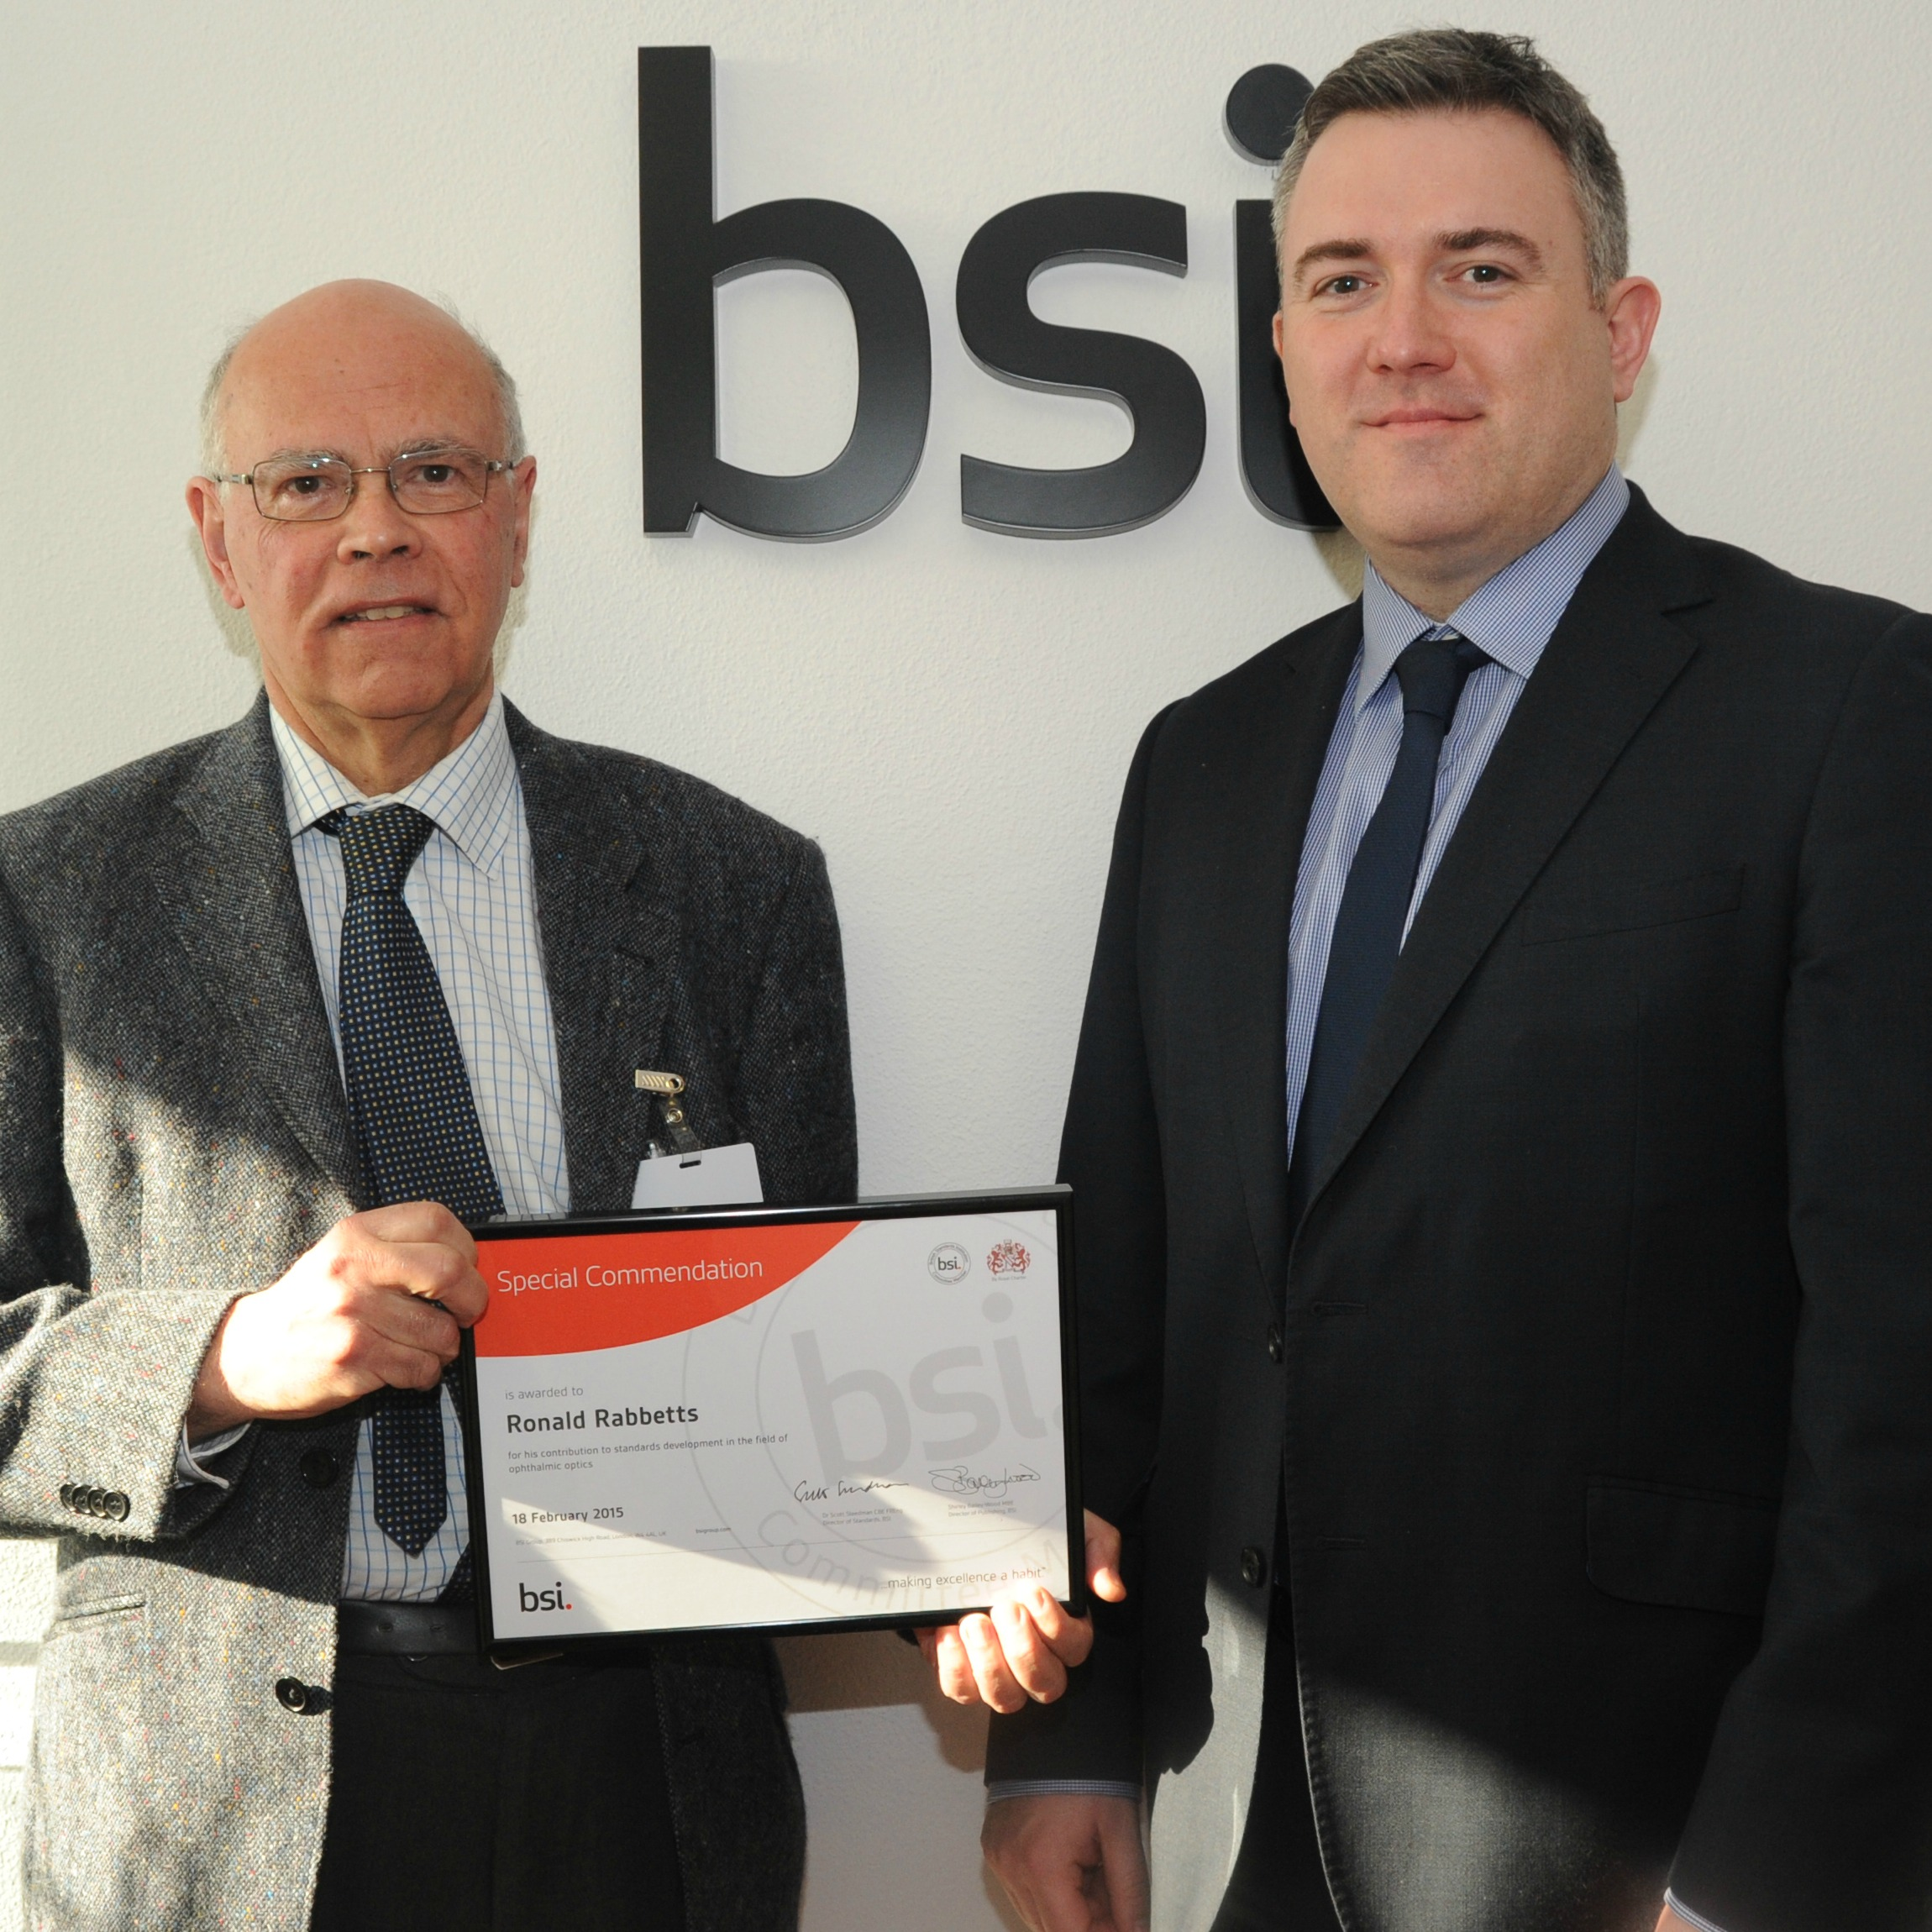 Ronald Rabbetts (left) receives his award from David Bell, BSI